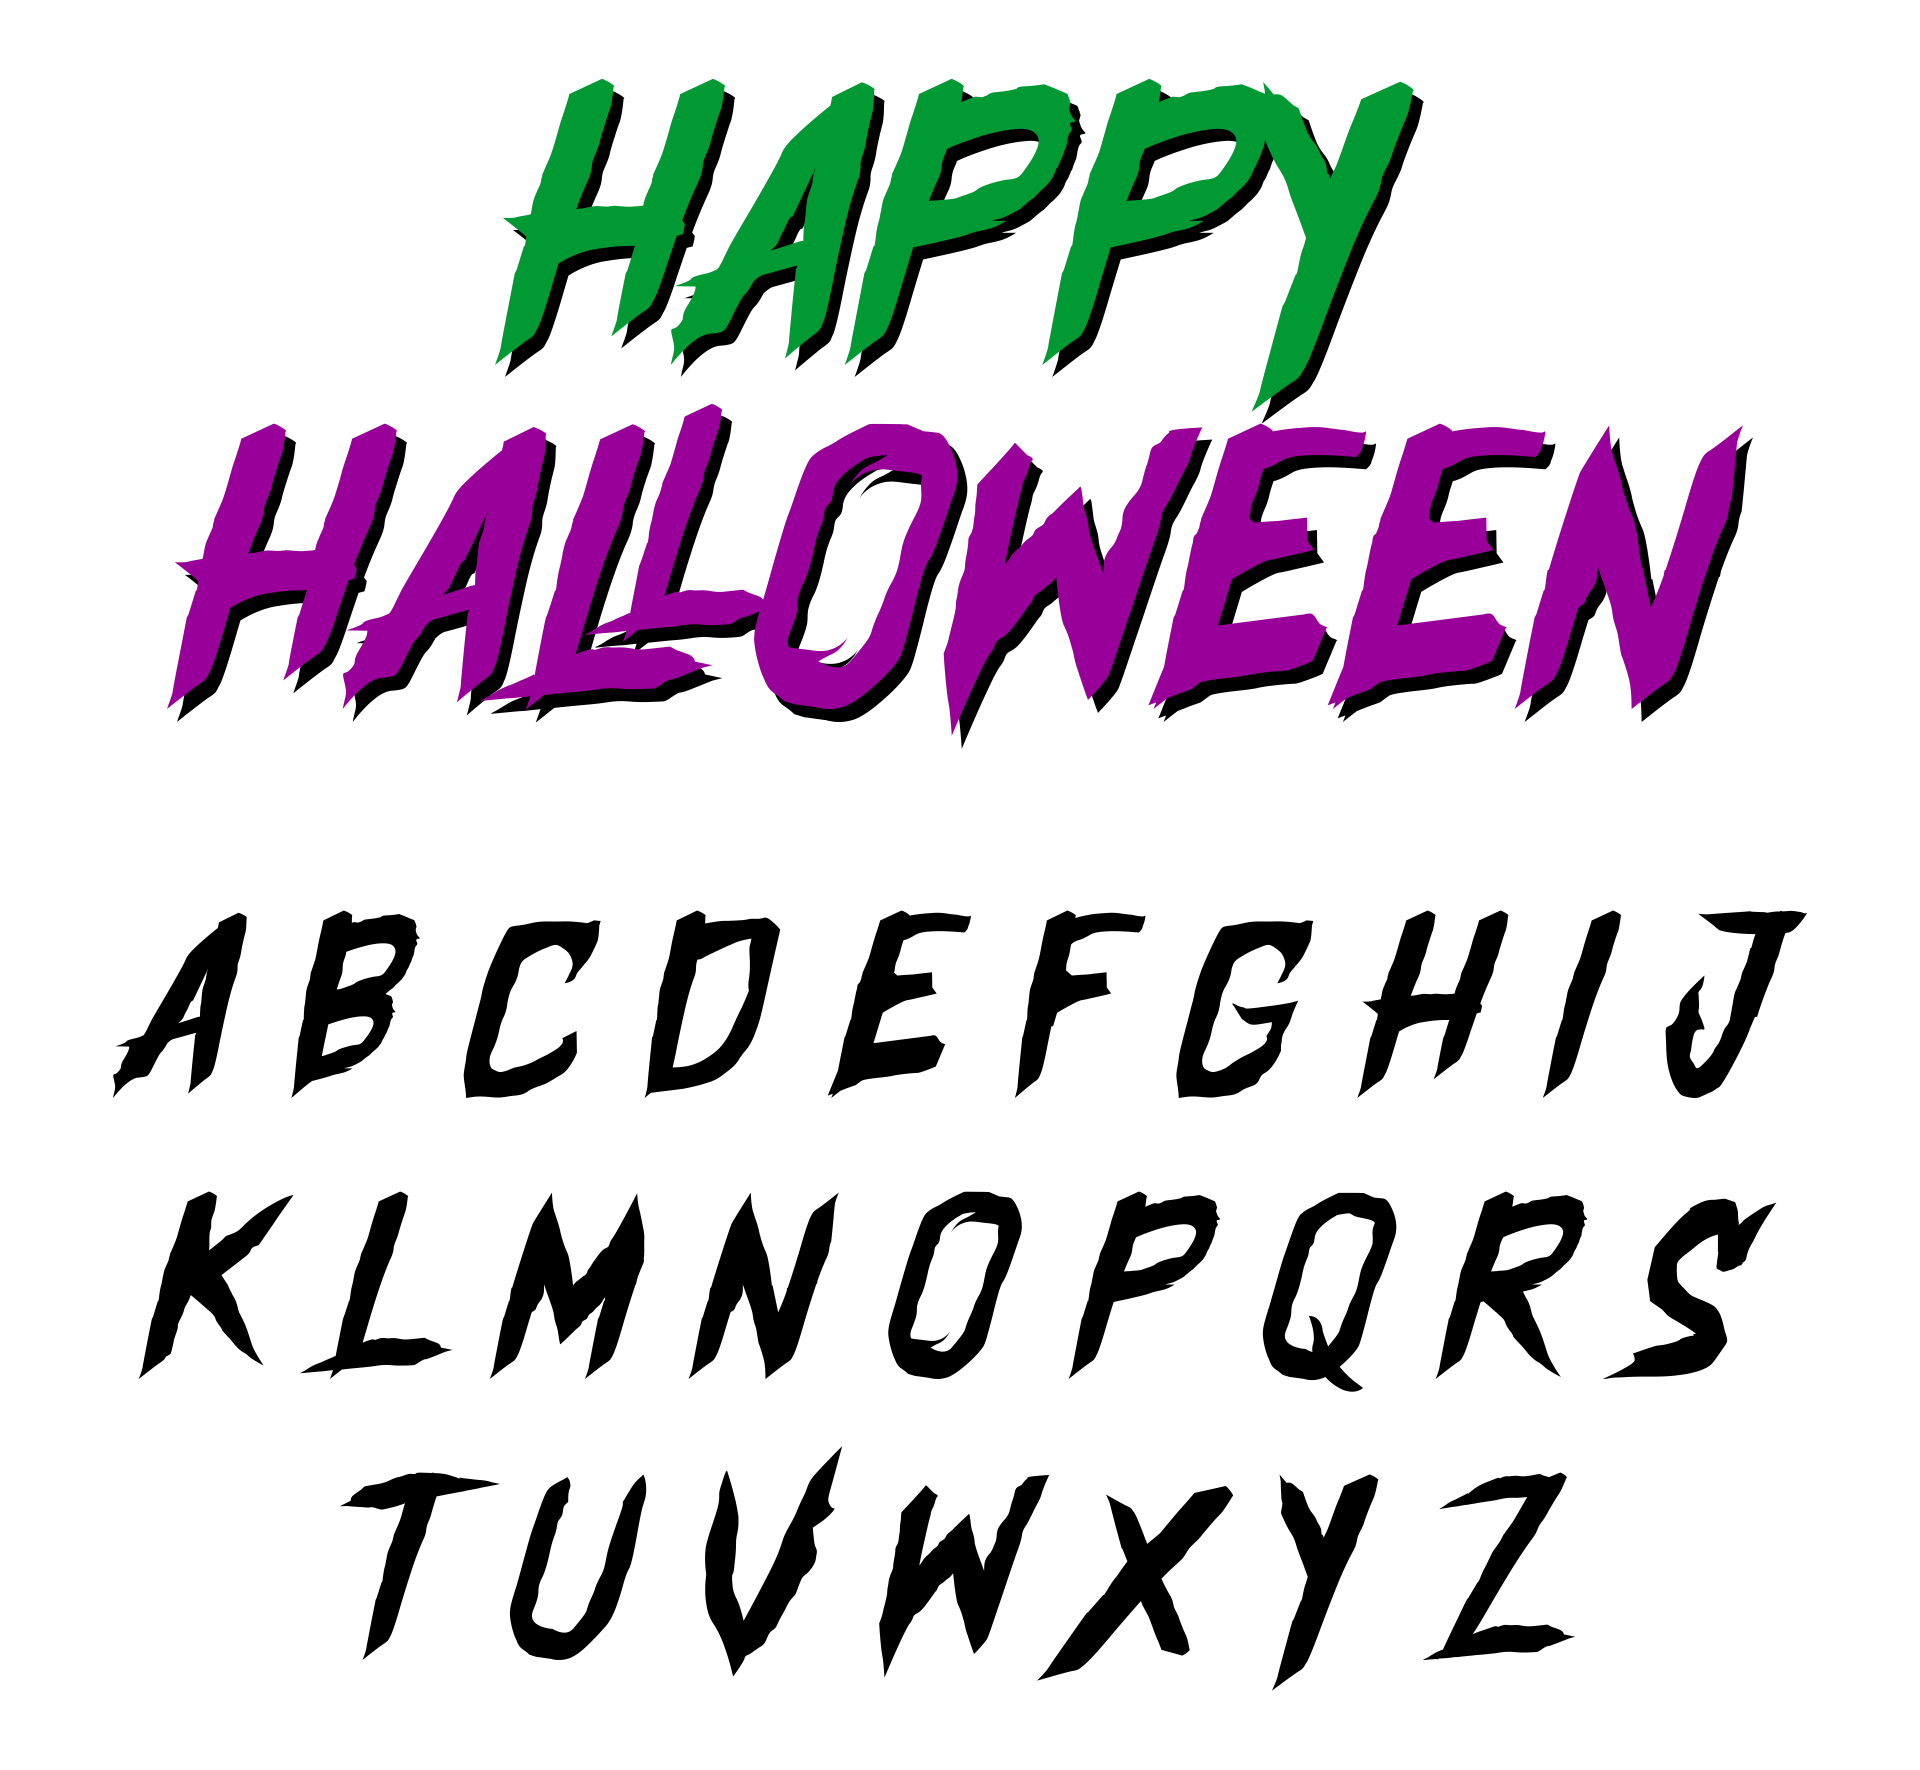 Printables & Free Halloween Fonts